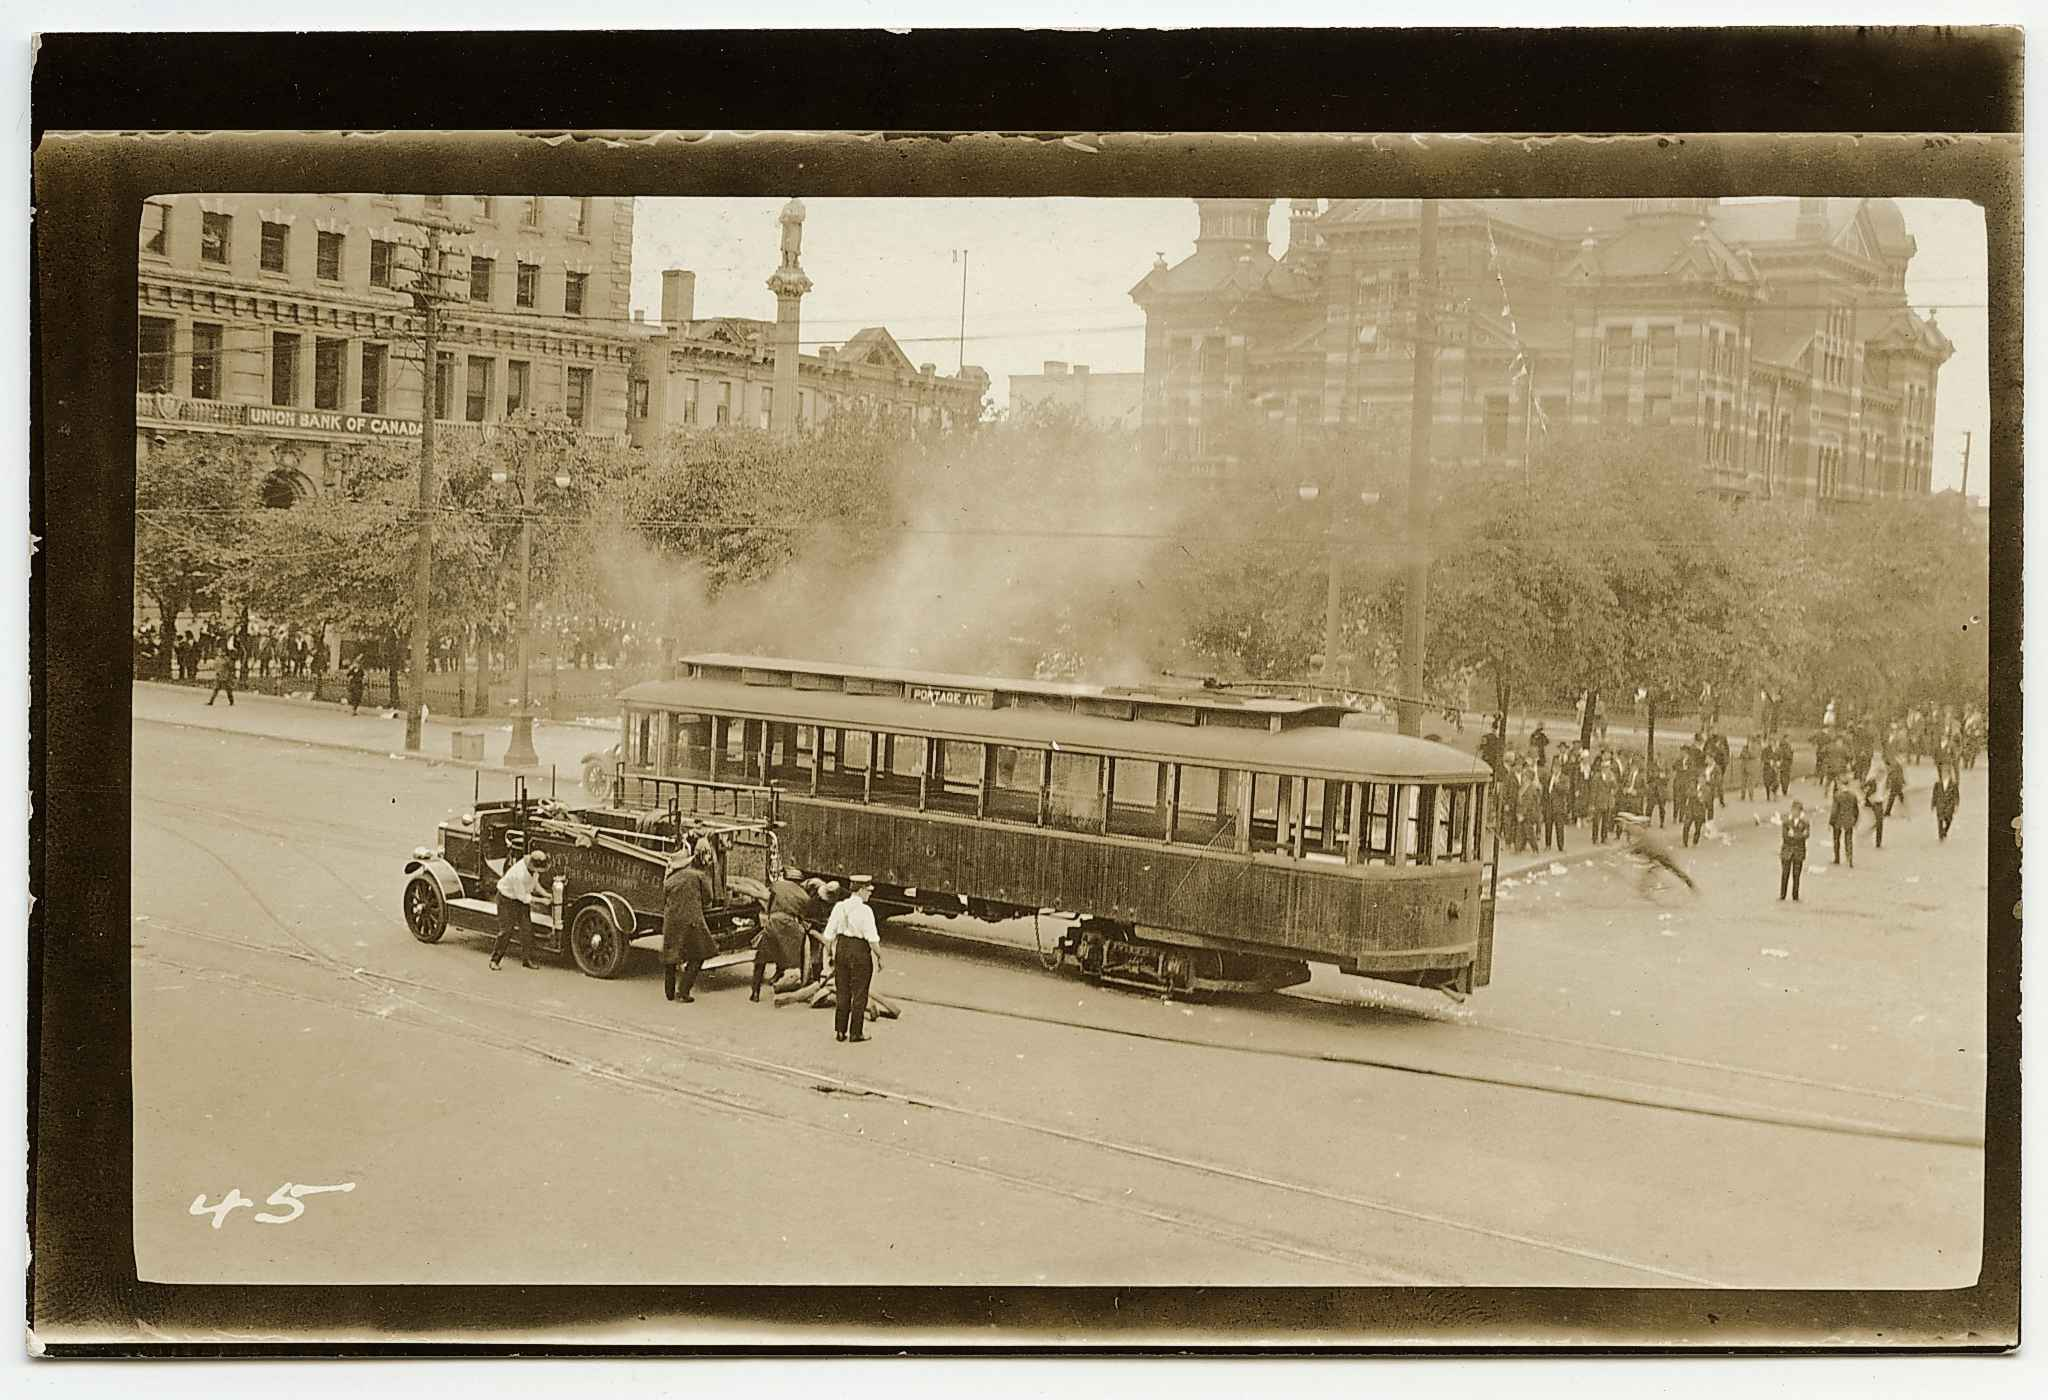 The charred remains of the iconic streetcar that was set on fire on June 21, 1919.